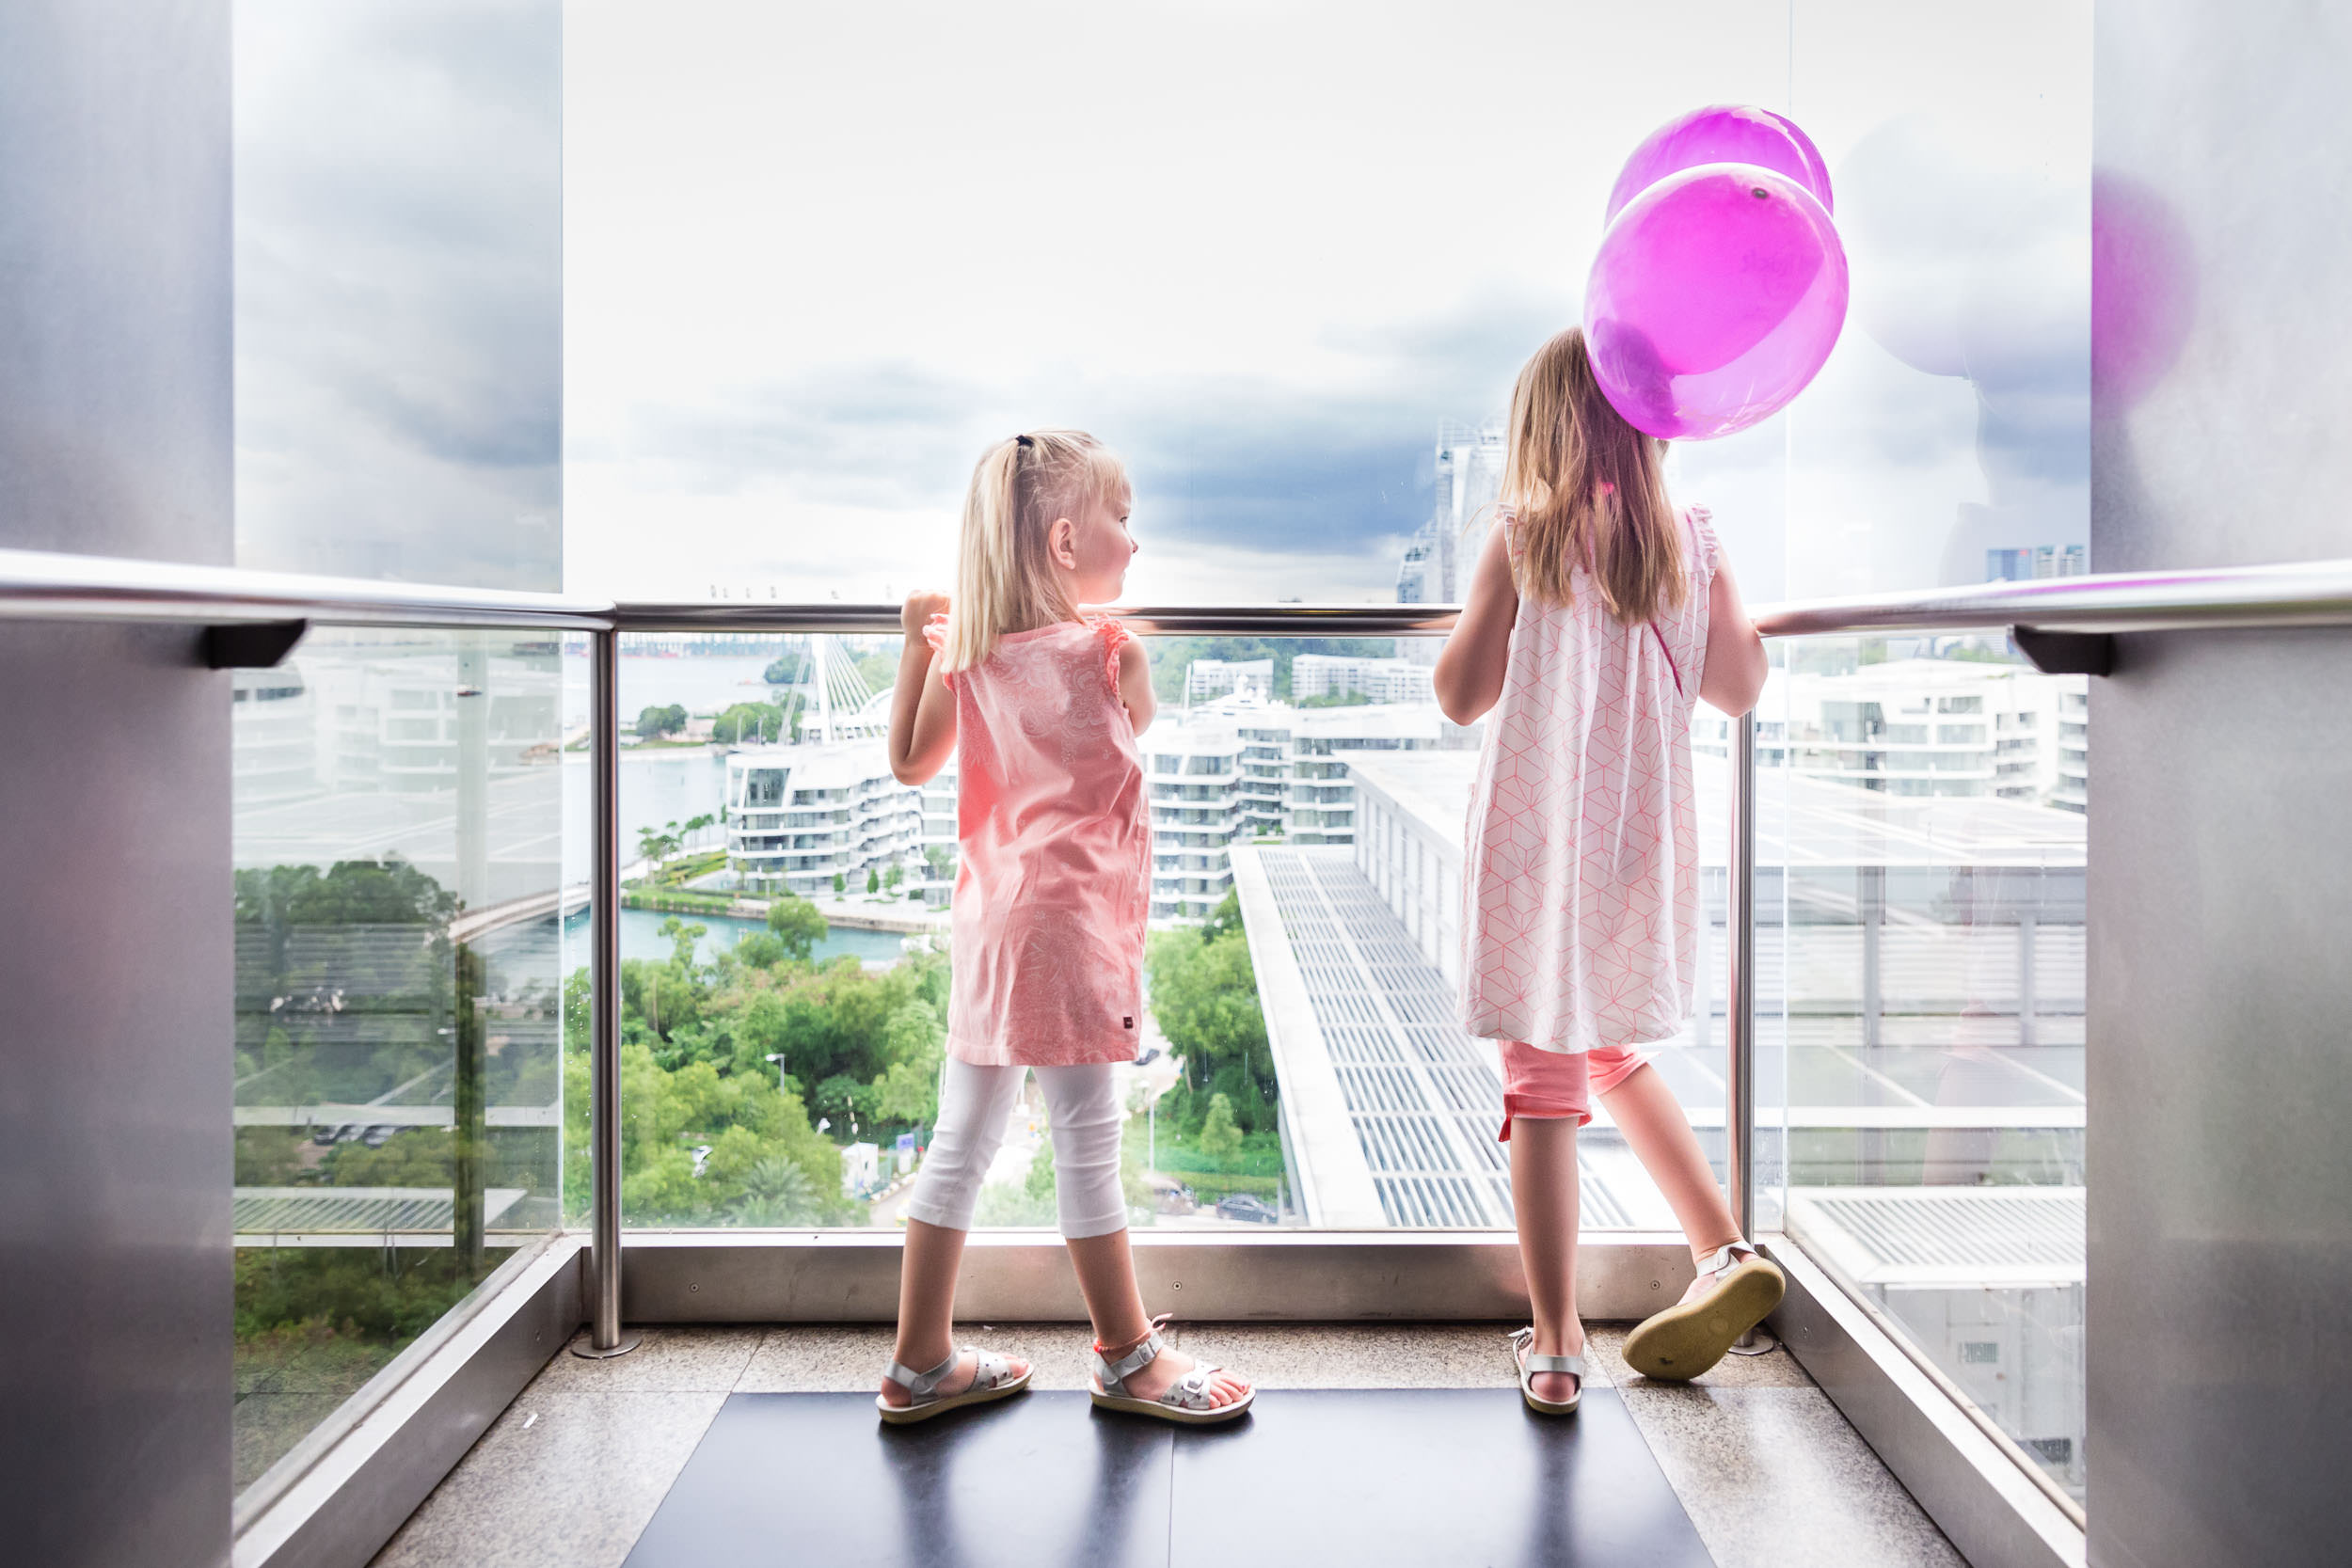 sisters_wearing_pink_holding_baloons_in_elevator_in_singapore_Personal_portfolio_by_rebecca_hunnicutt_farren.jpg